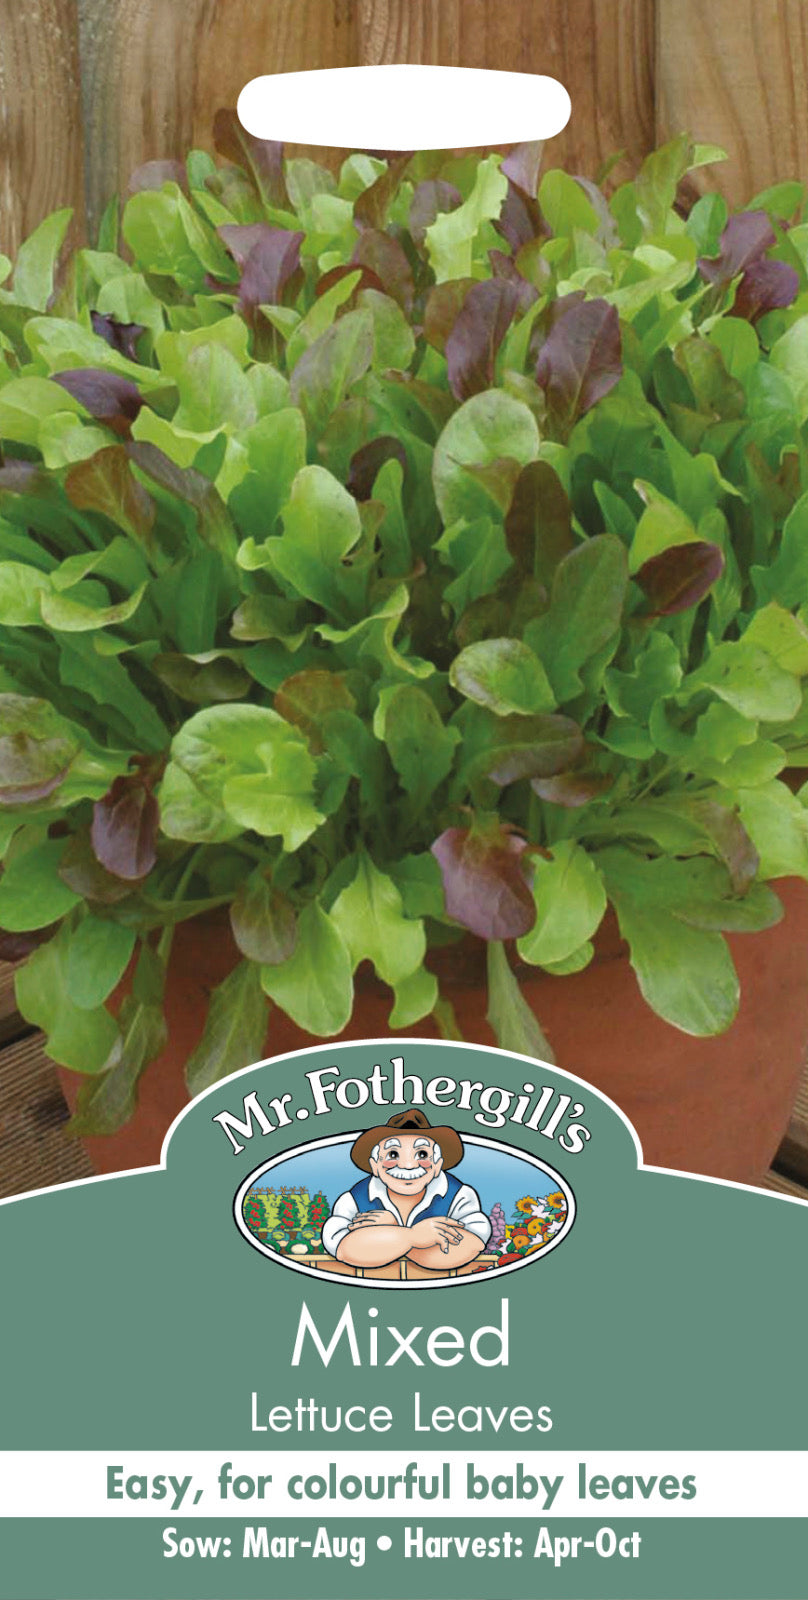 Mixed Lettuce seeds